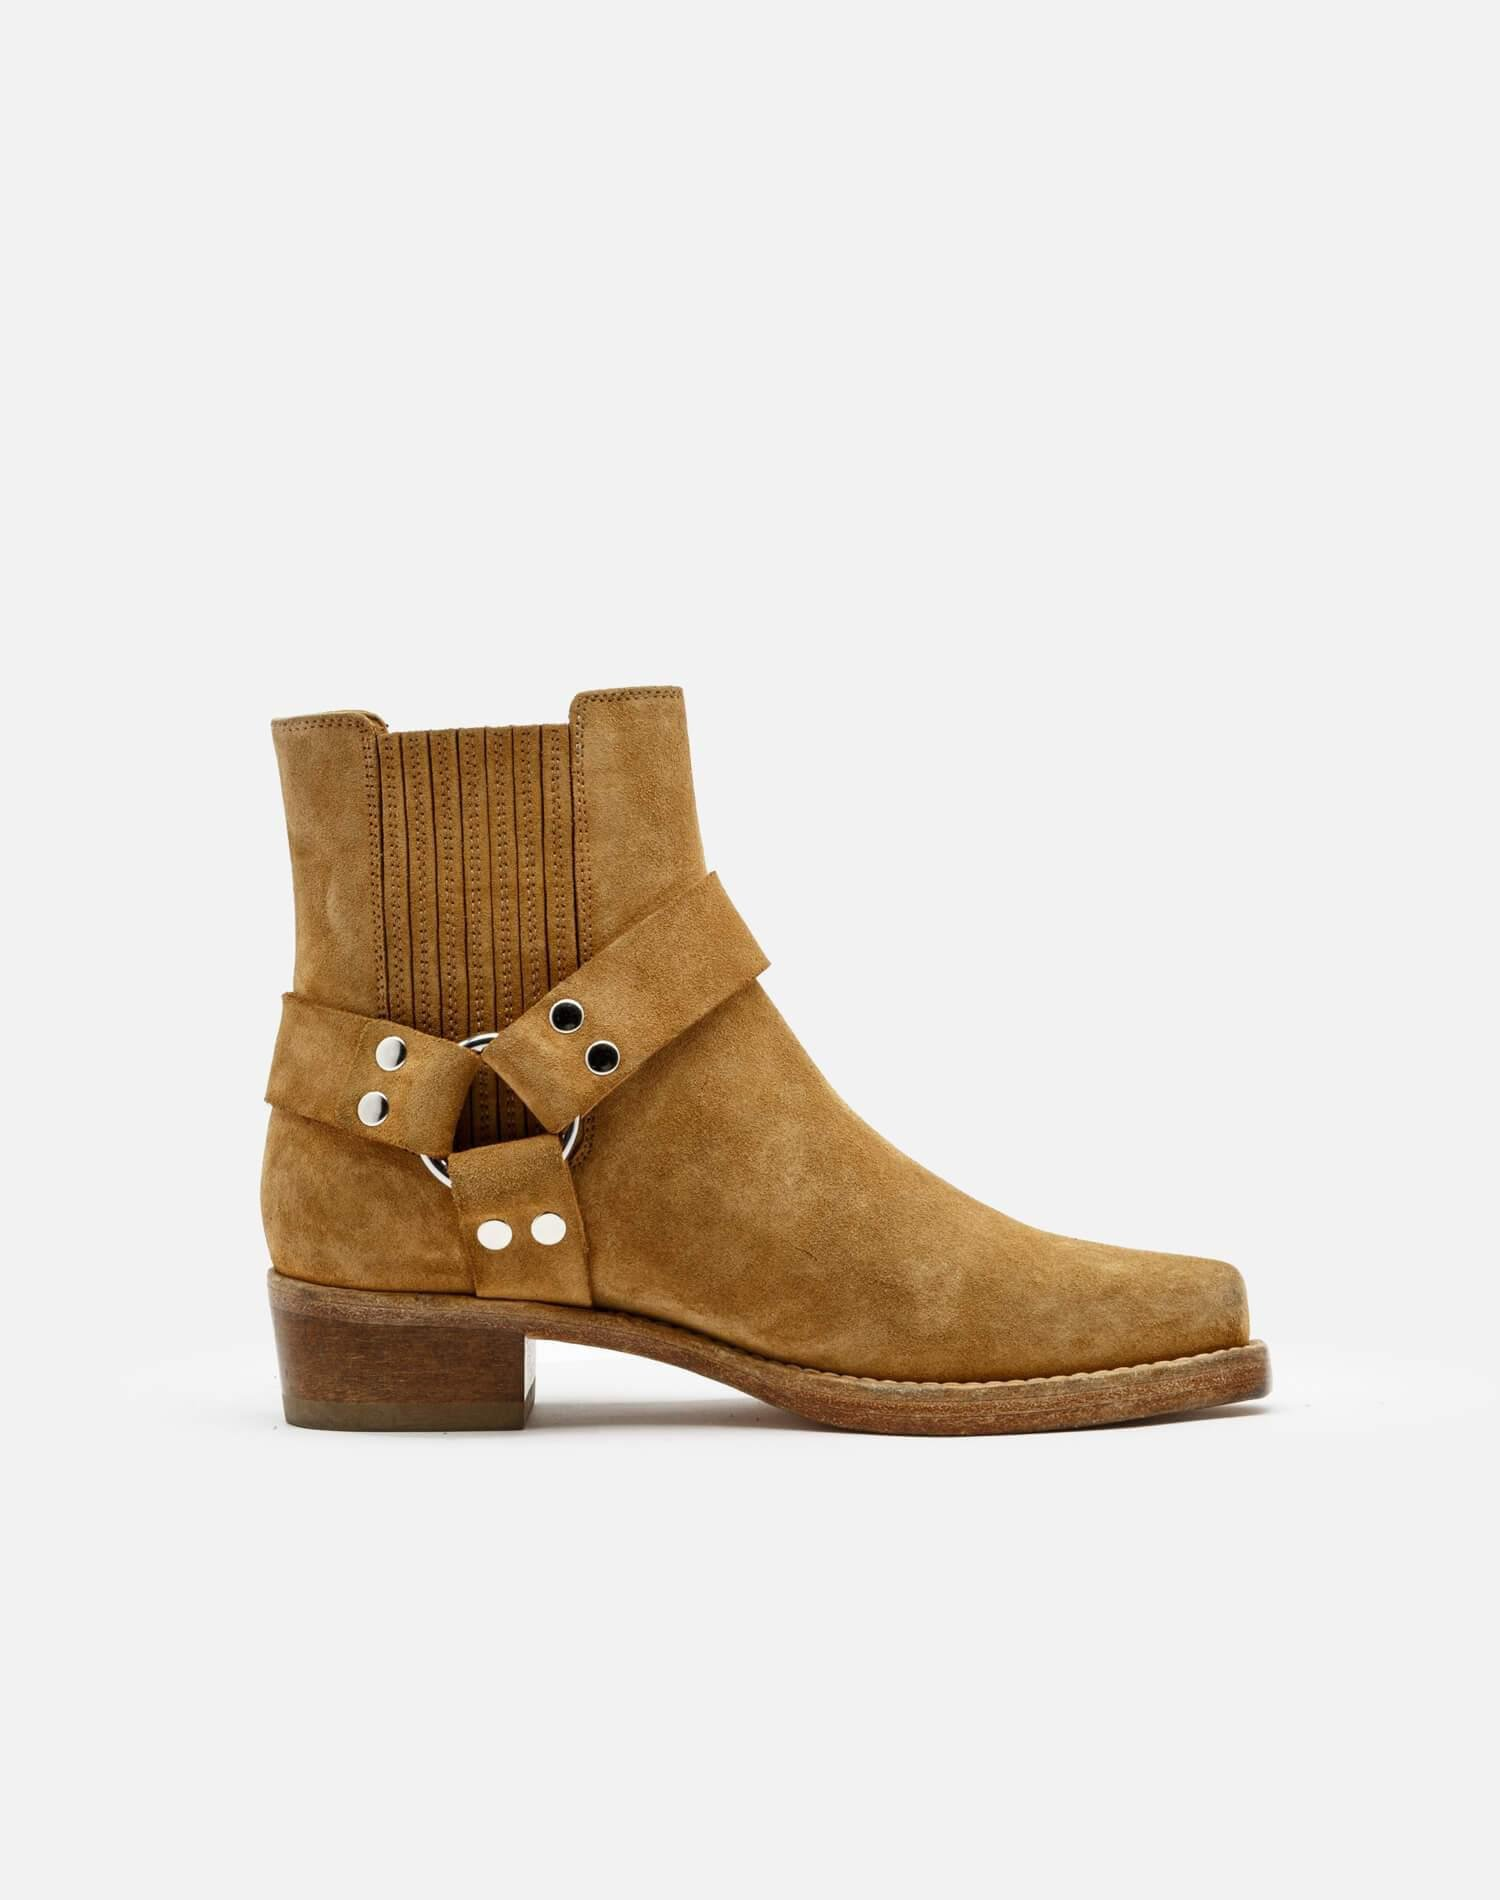 Cavalry Boot - Caramel Suede